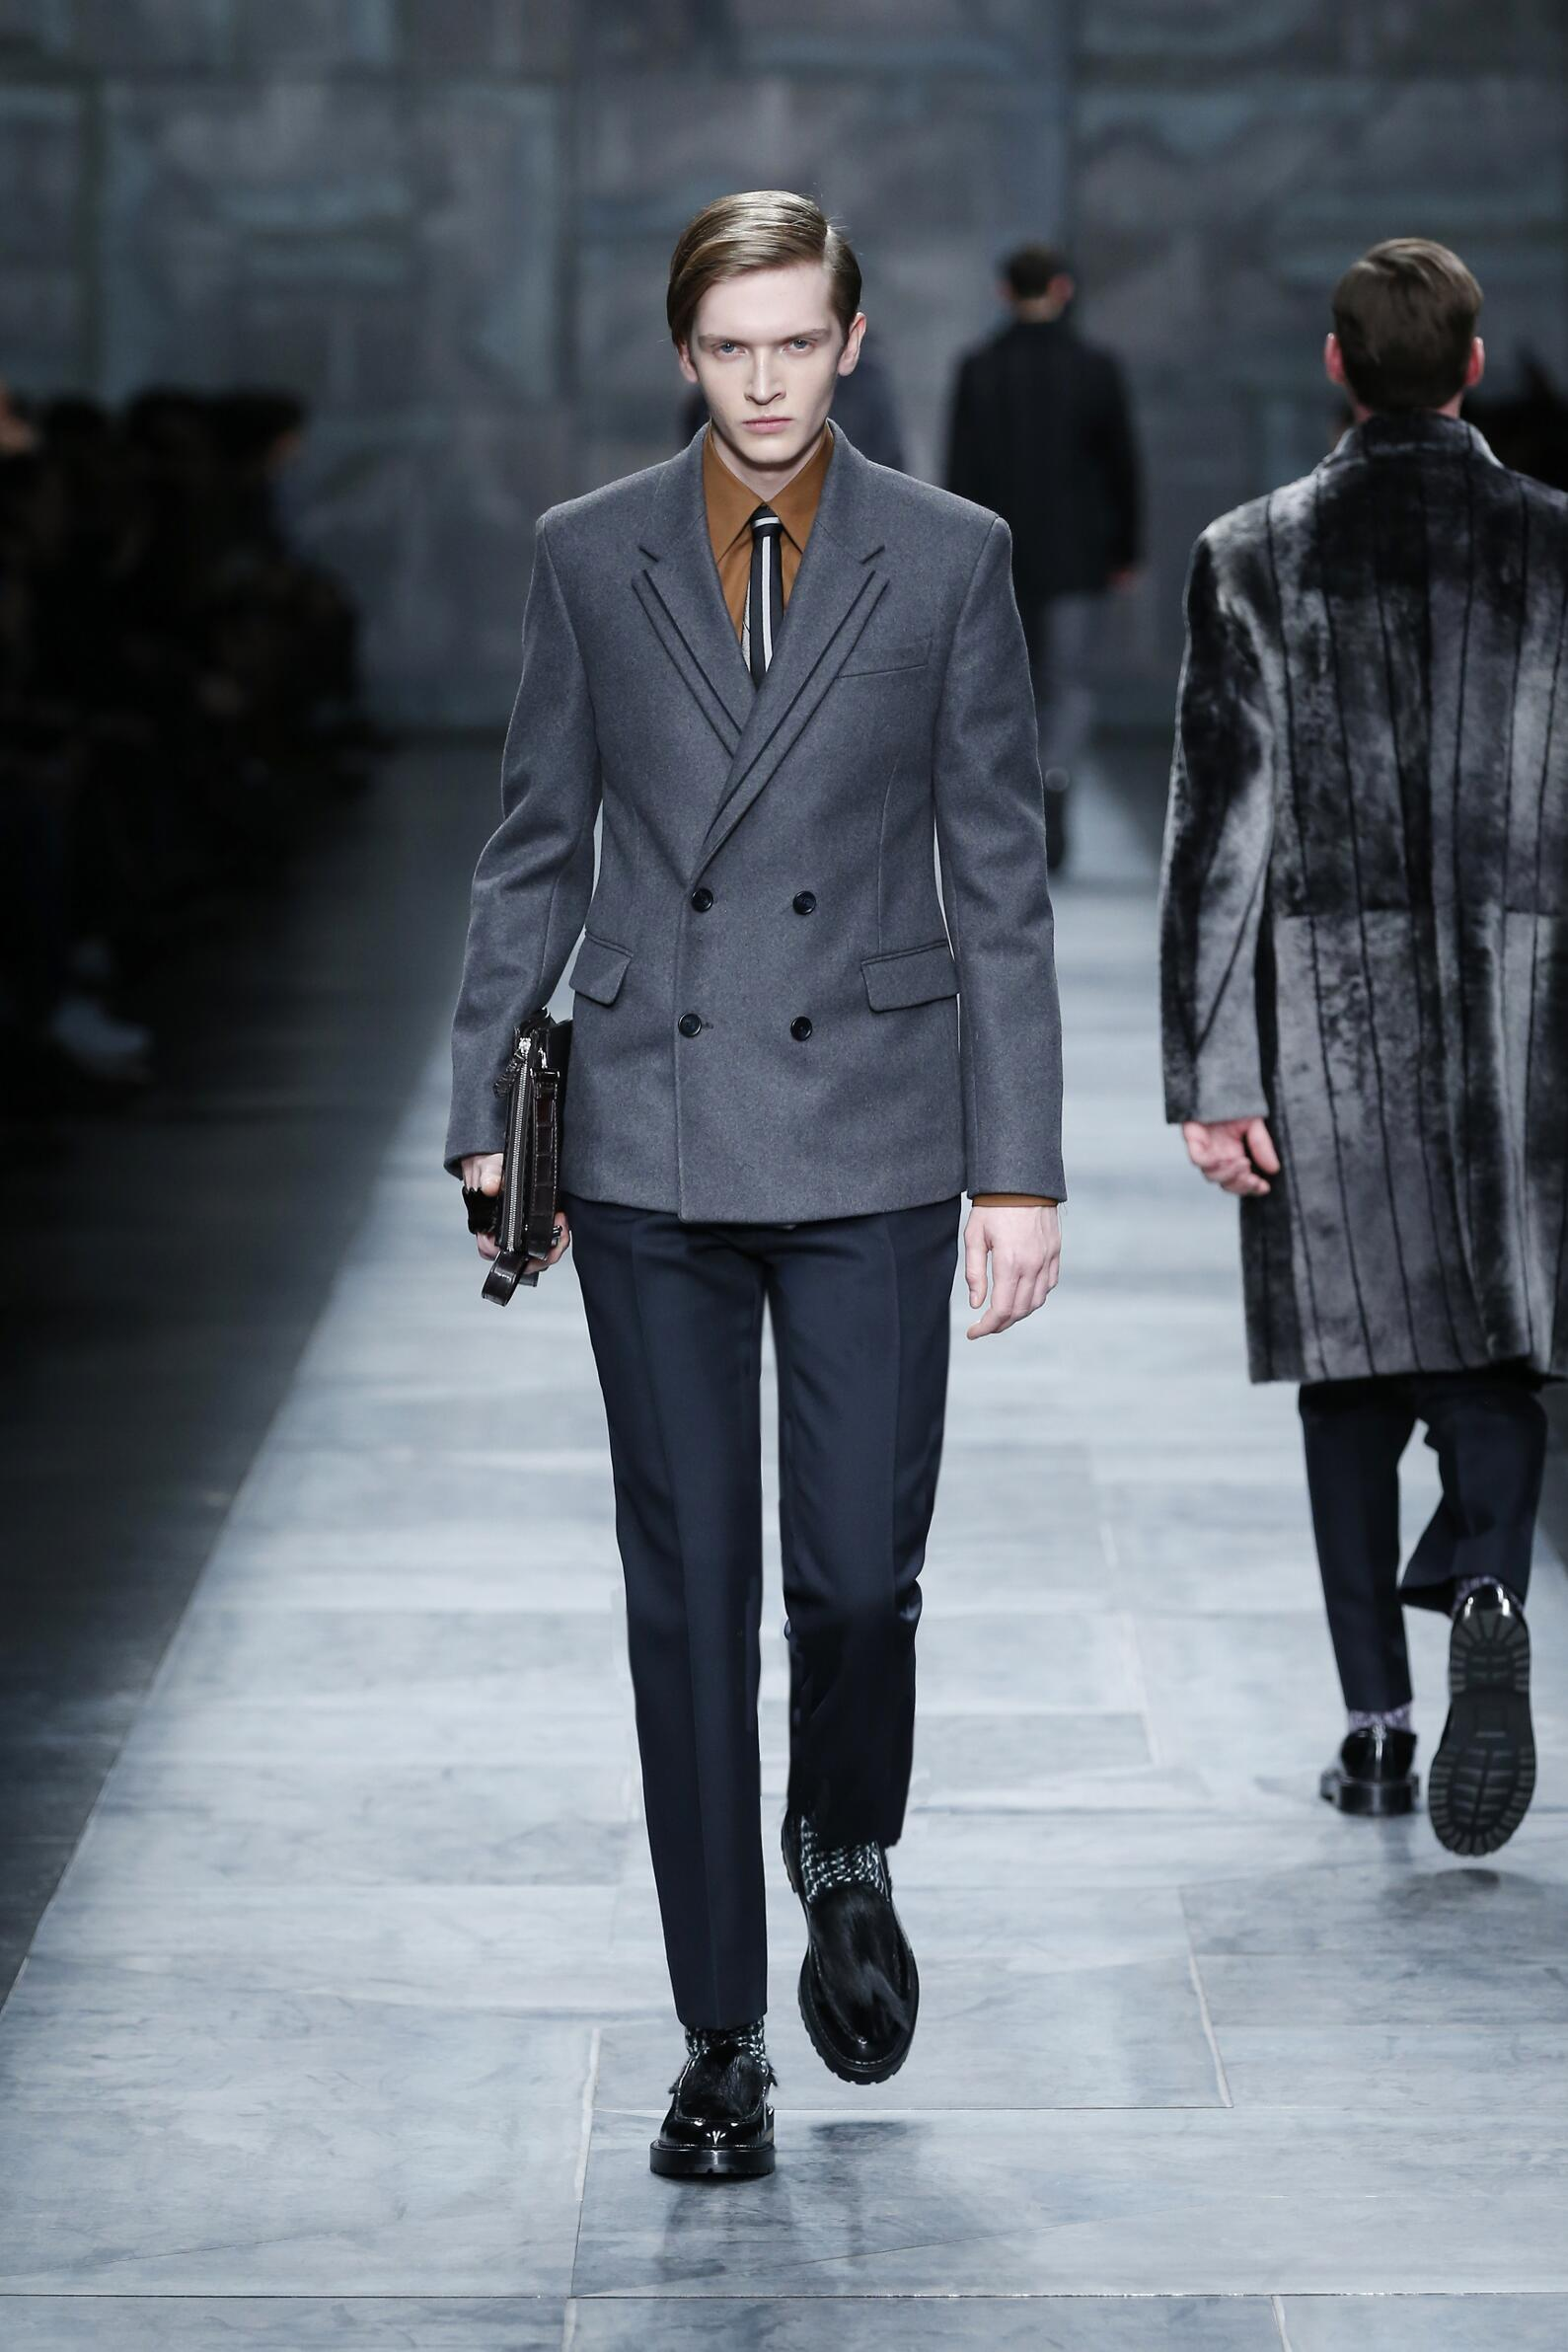 Runway Fendi Fashion Show Winter 2015